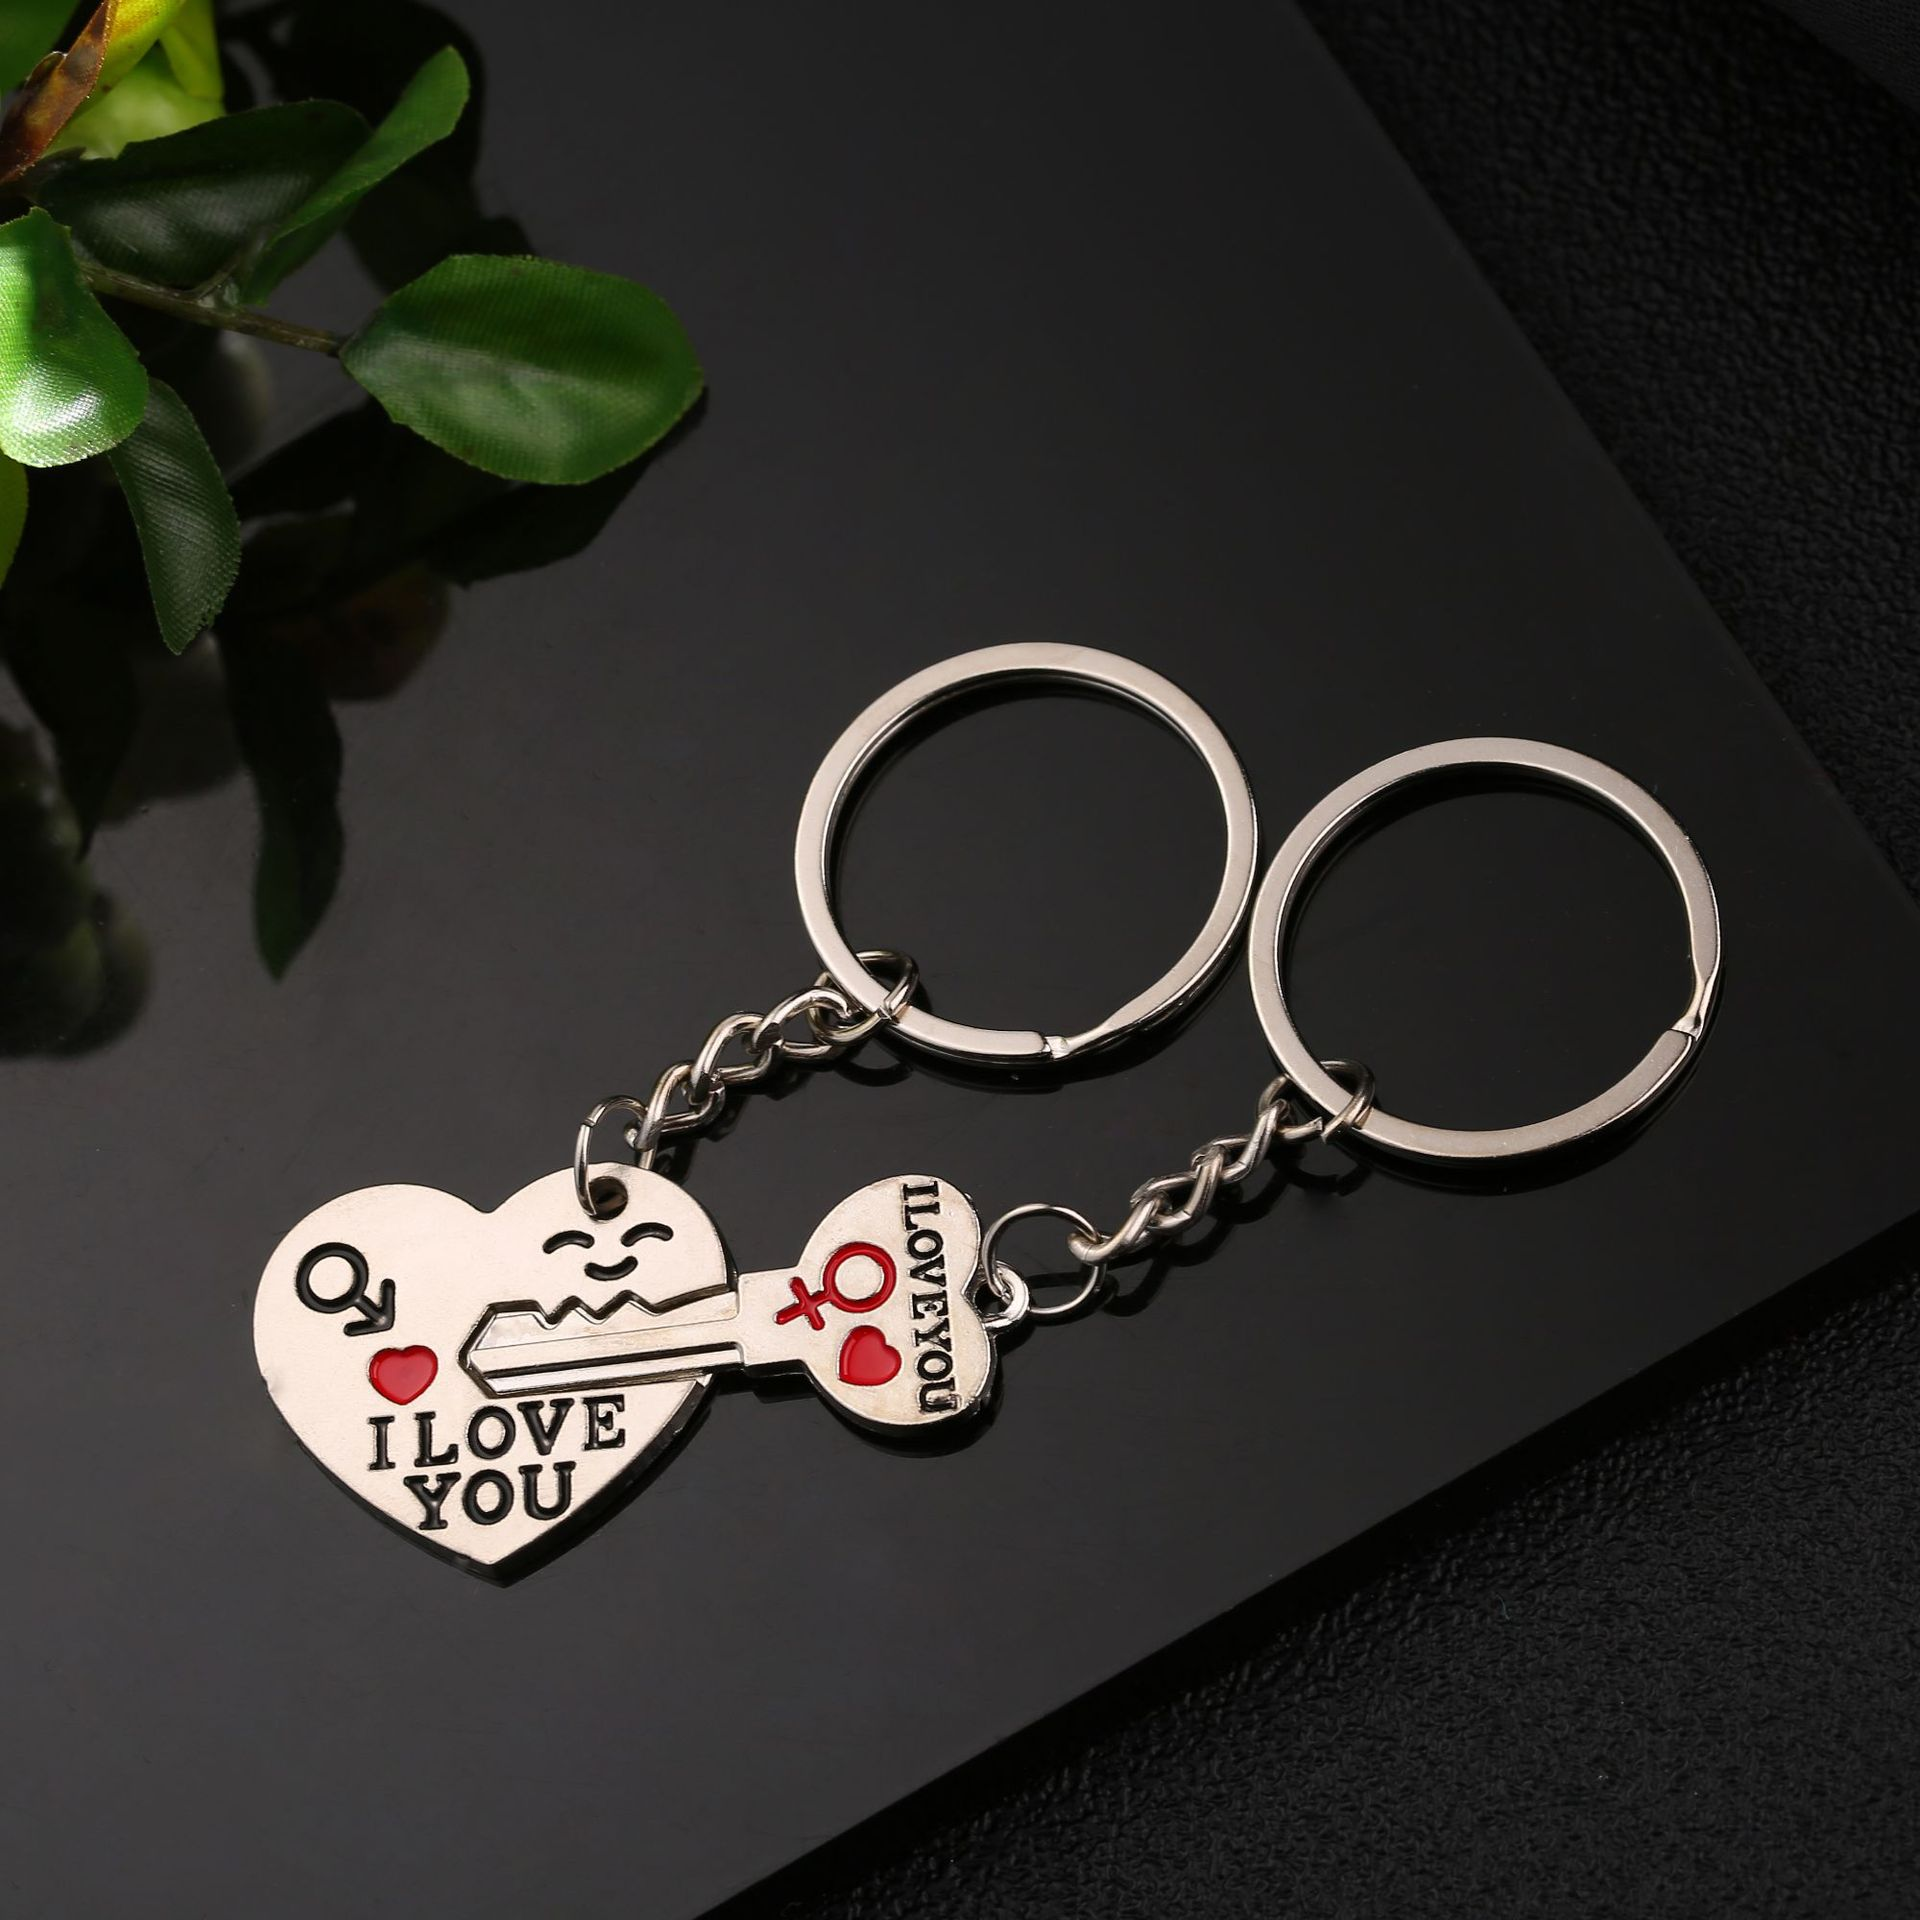 1 Pair Sliver Couple Keychain Wedding Favors Best Gift for Girl Friend I Love You Letter Heart Keychain Festival Present in Party Favors from Home Garden